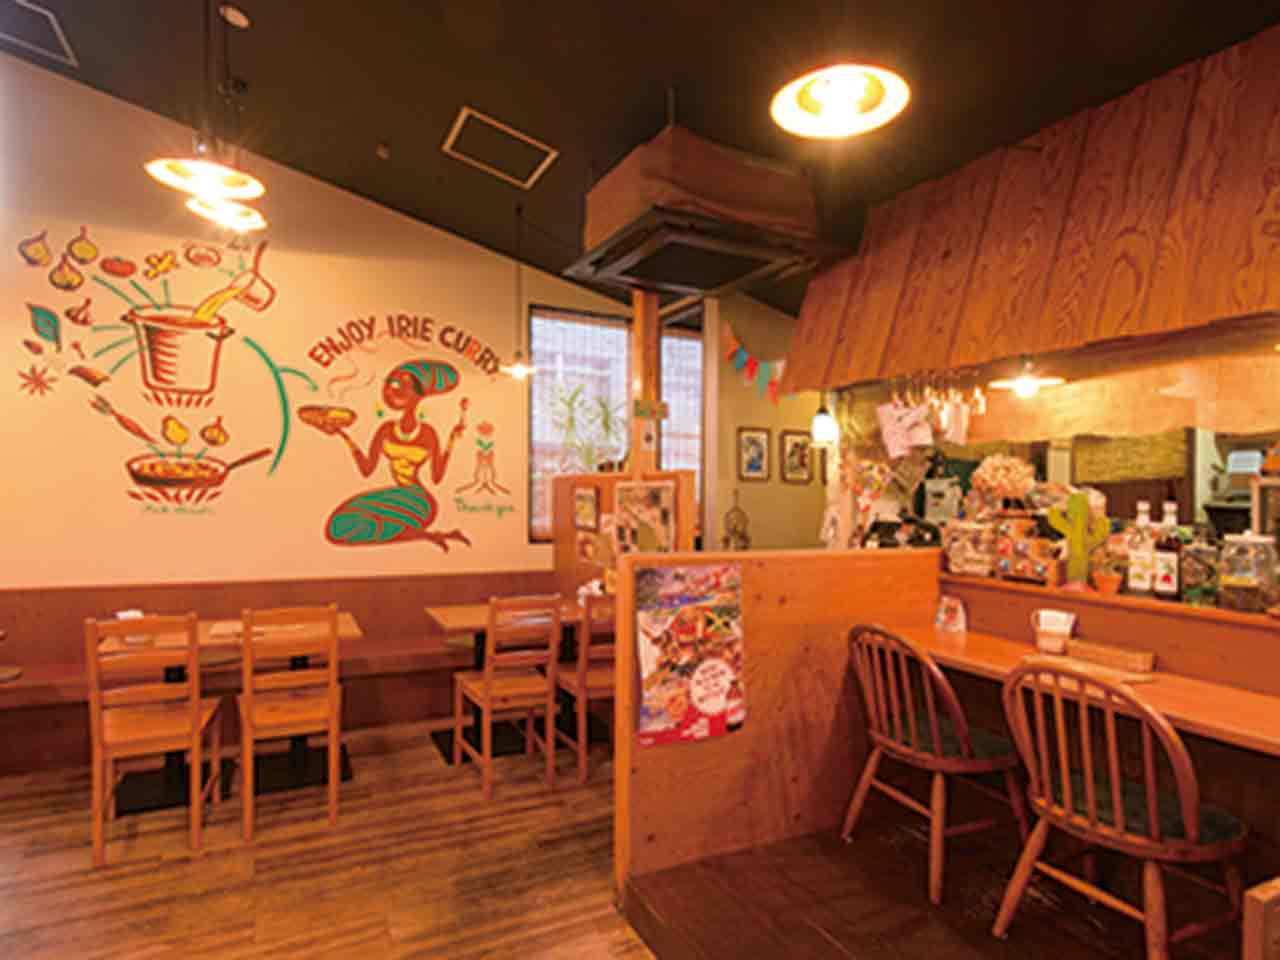 IRIE CURRY HOUSEのイメージ